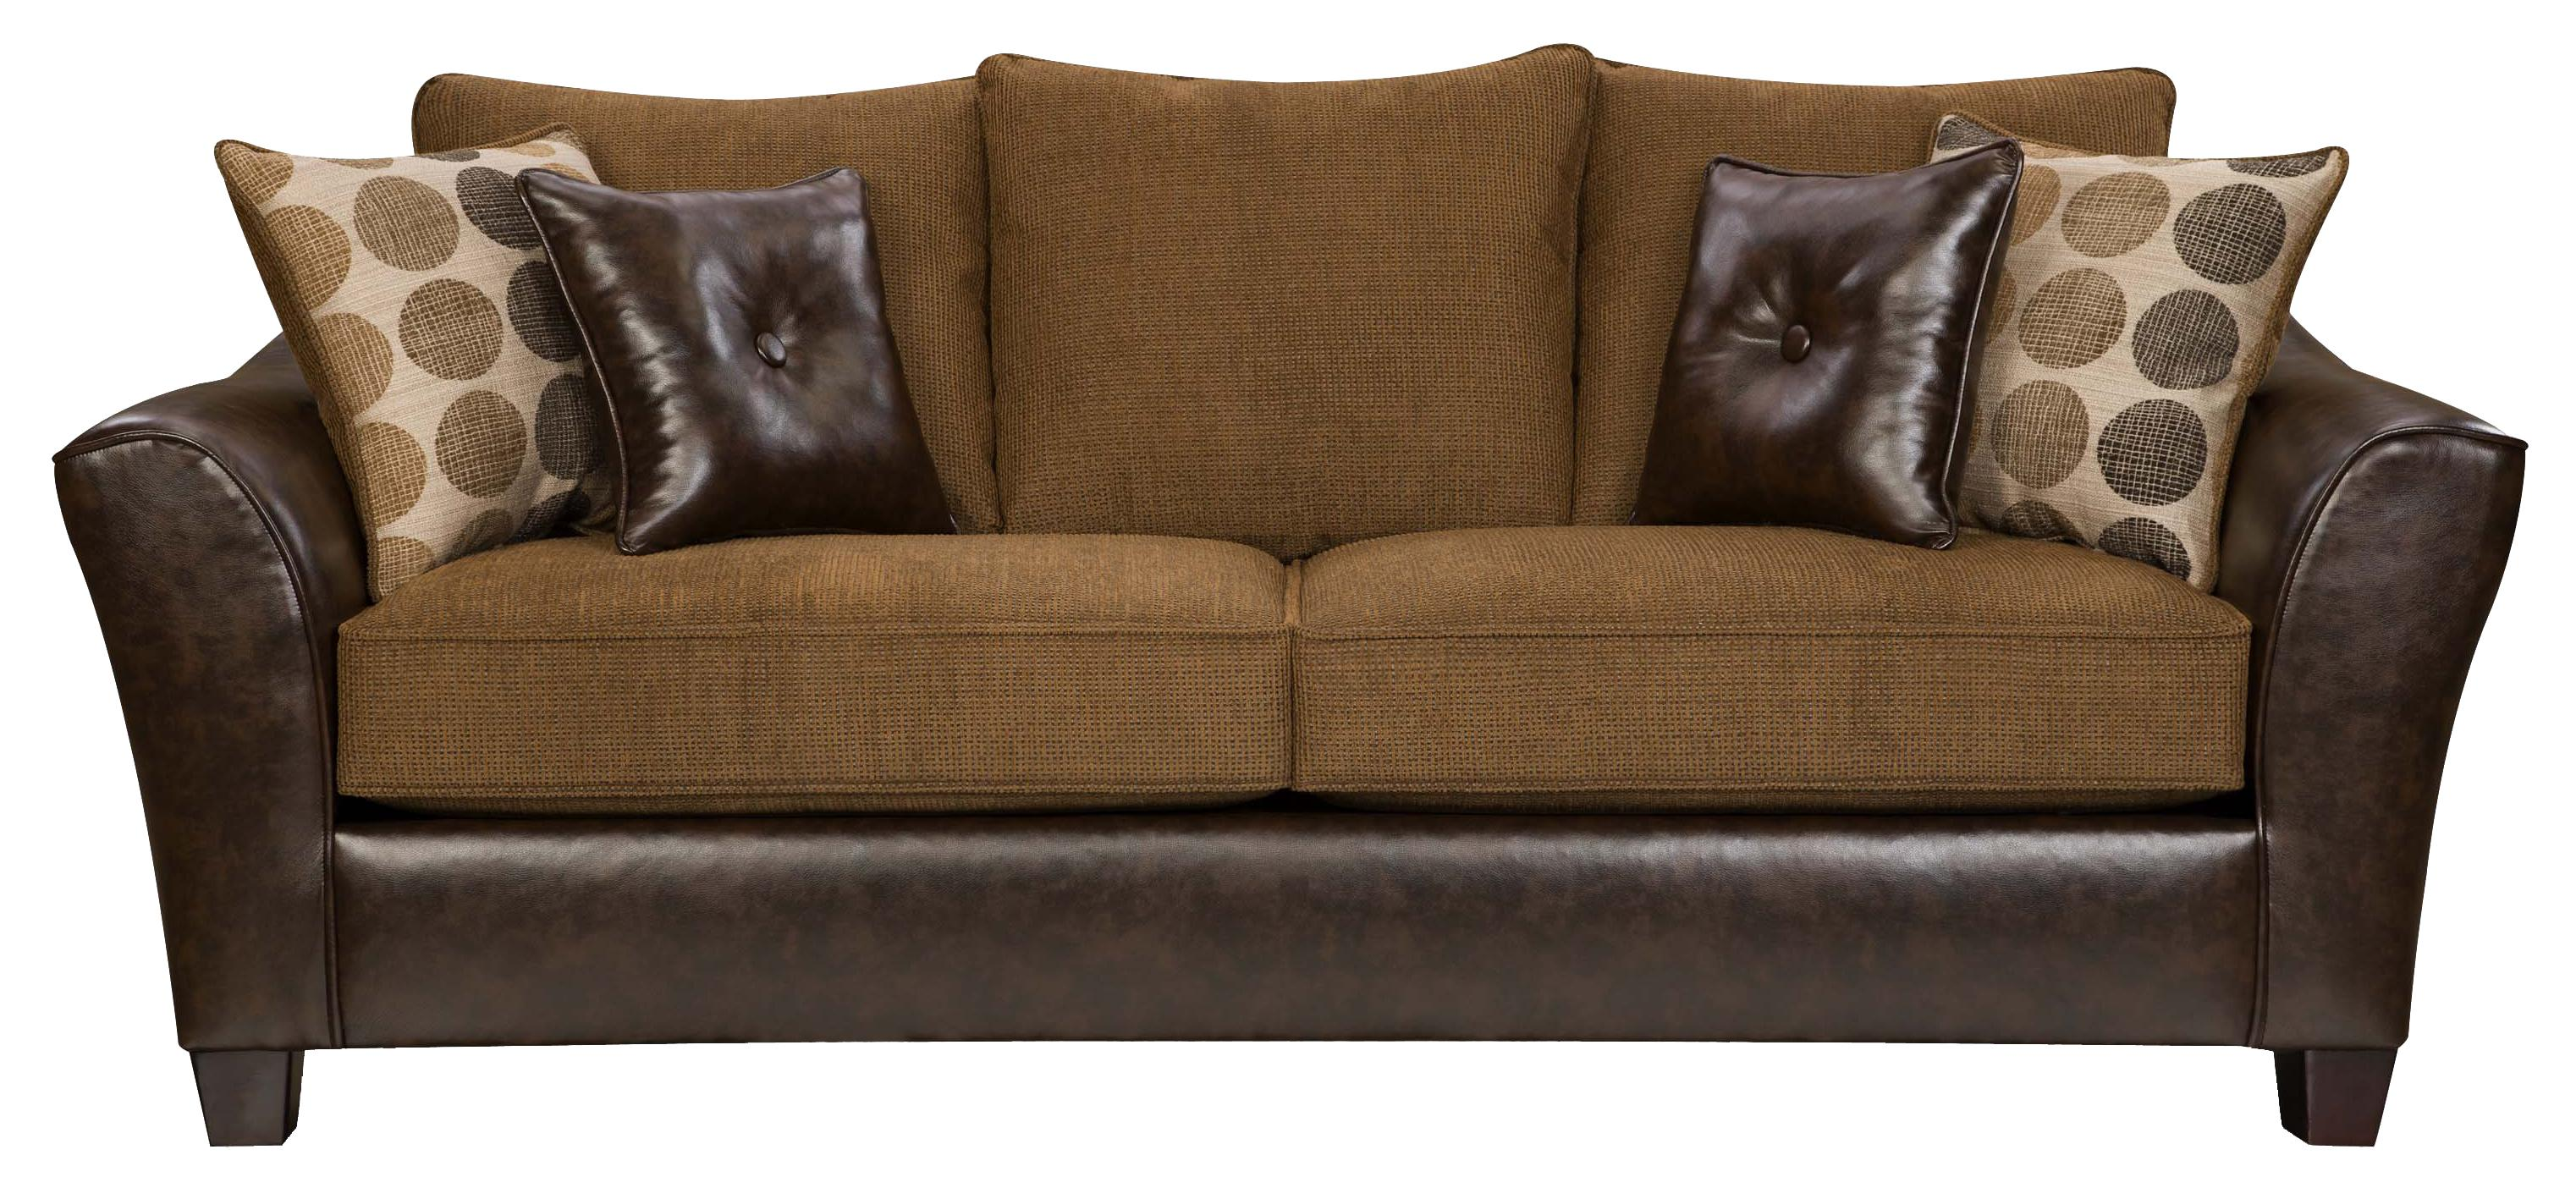 American Furniture 3200 Group Sofa - Item Number: 3203 4820